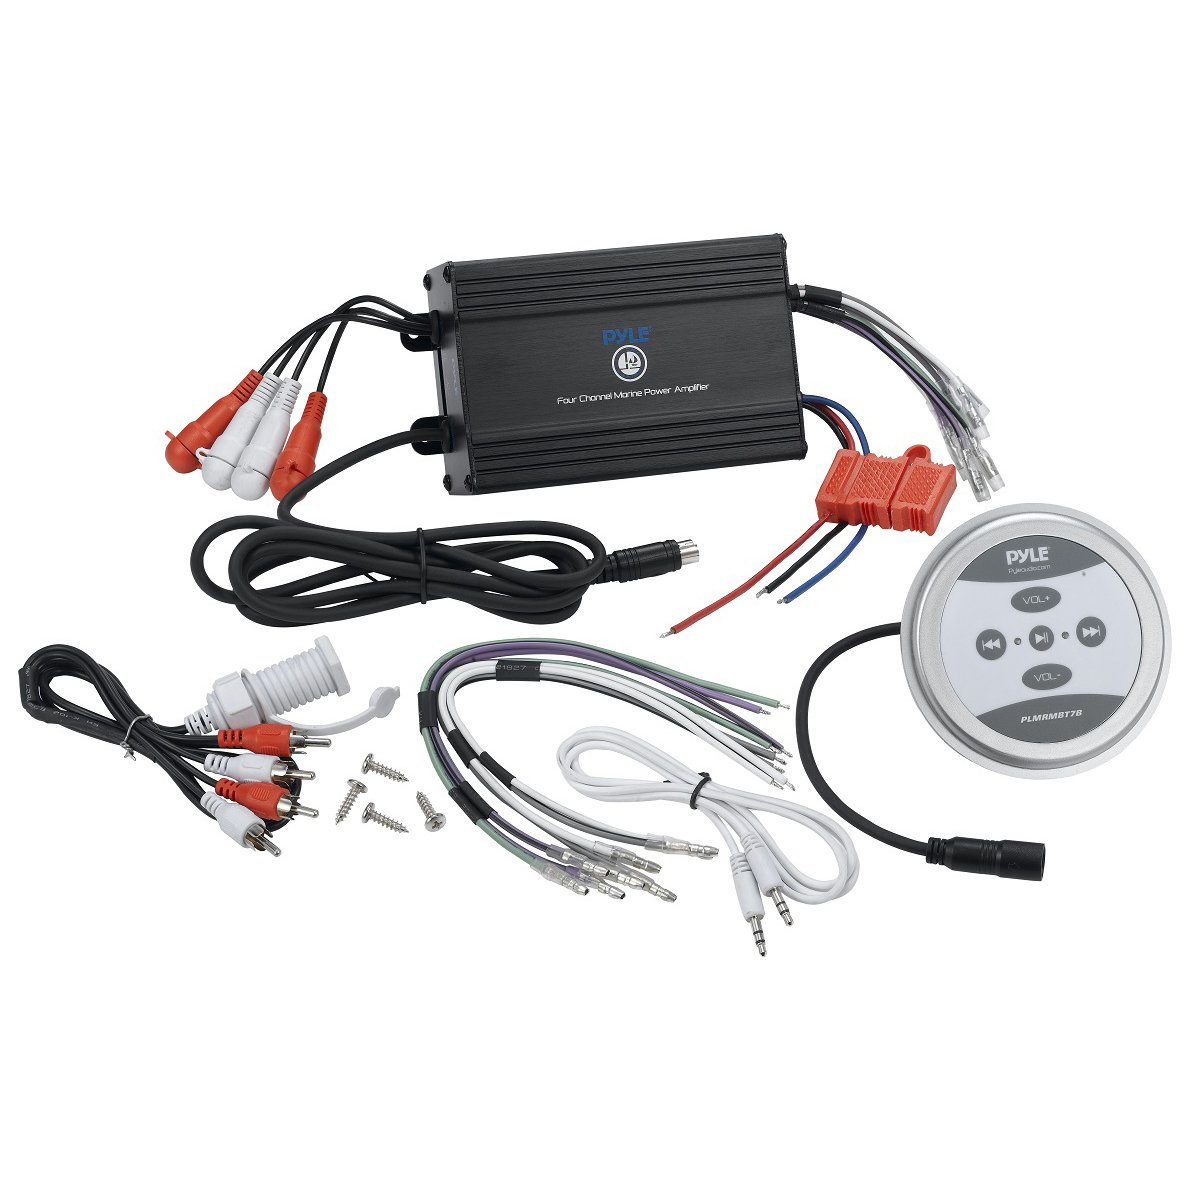 71HiTs xXKL._SL1188_ amazon com pyle compact bluetooth marine amplifier kit Custom Automotive Wiring Harness Kits at honlapkeszites.co